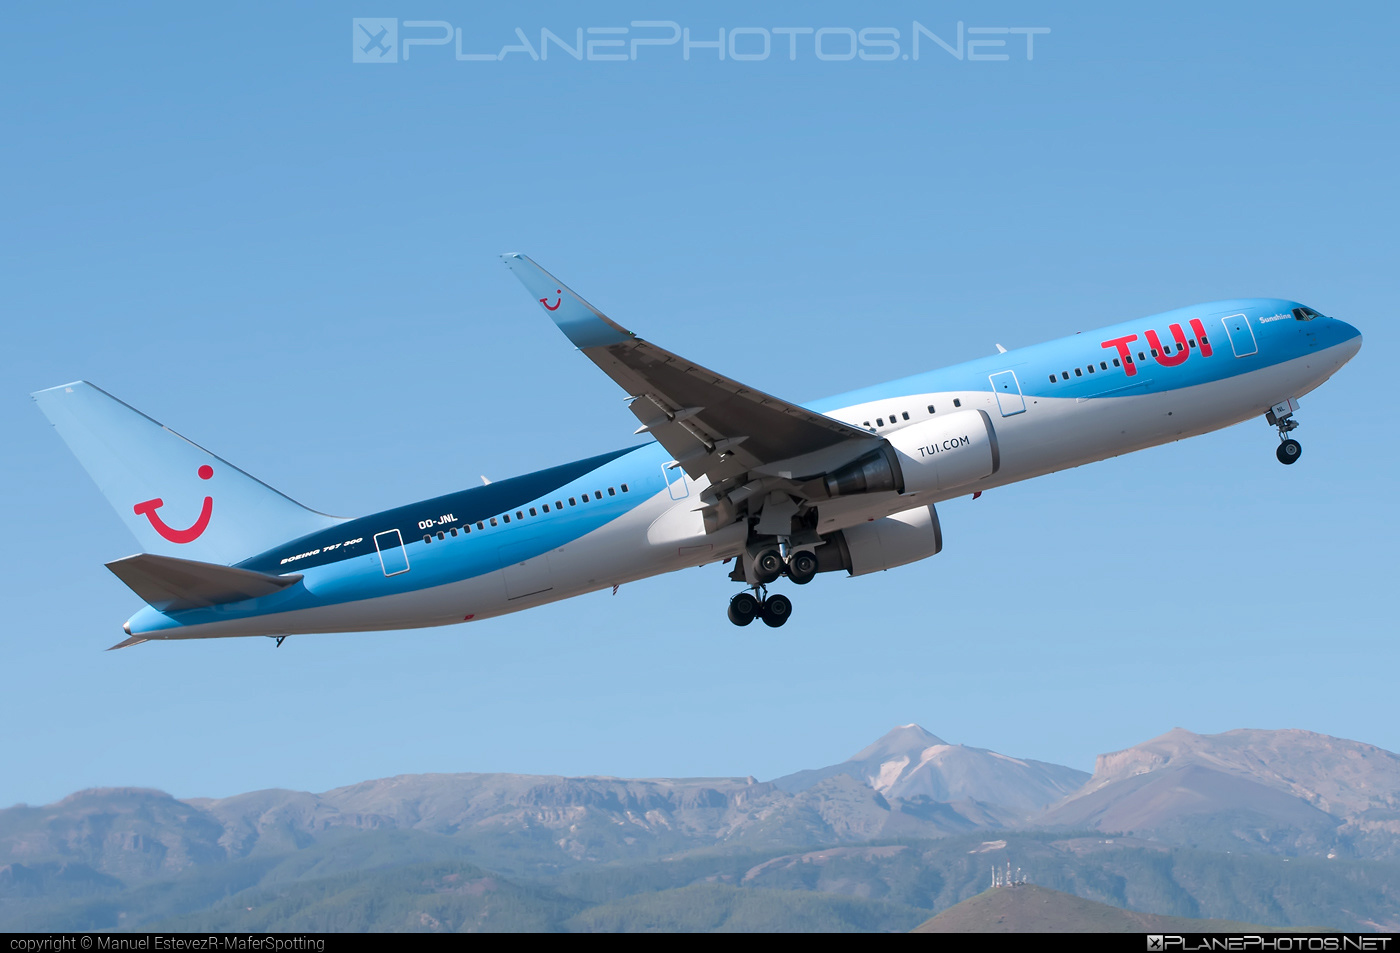 Boeing 767-300ER - OO-JNL operated by TUI Airlines Belgium #b767 #b767er #boeing #boeing767 #tui #tuiairlines #tuiairlinesbelgium